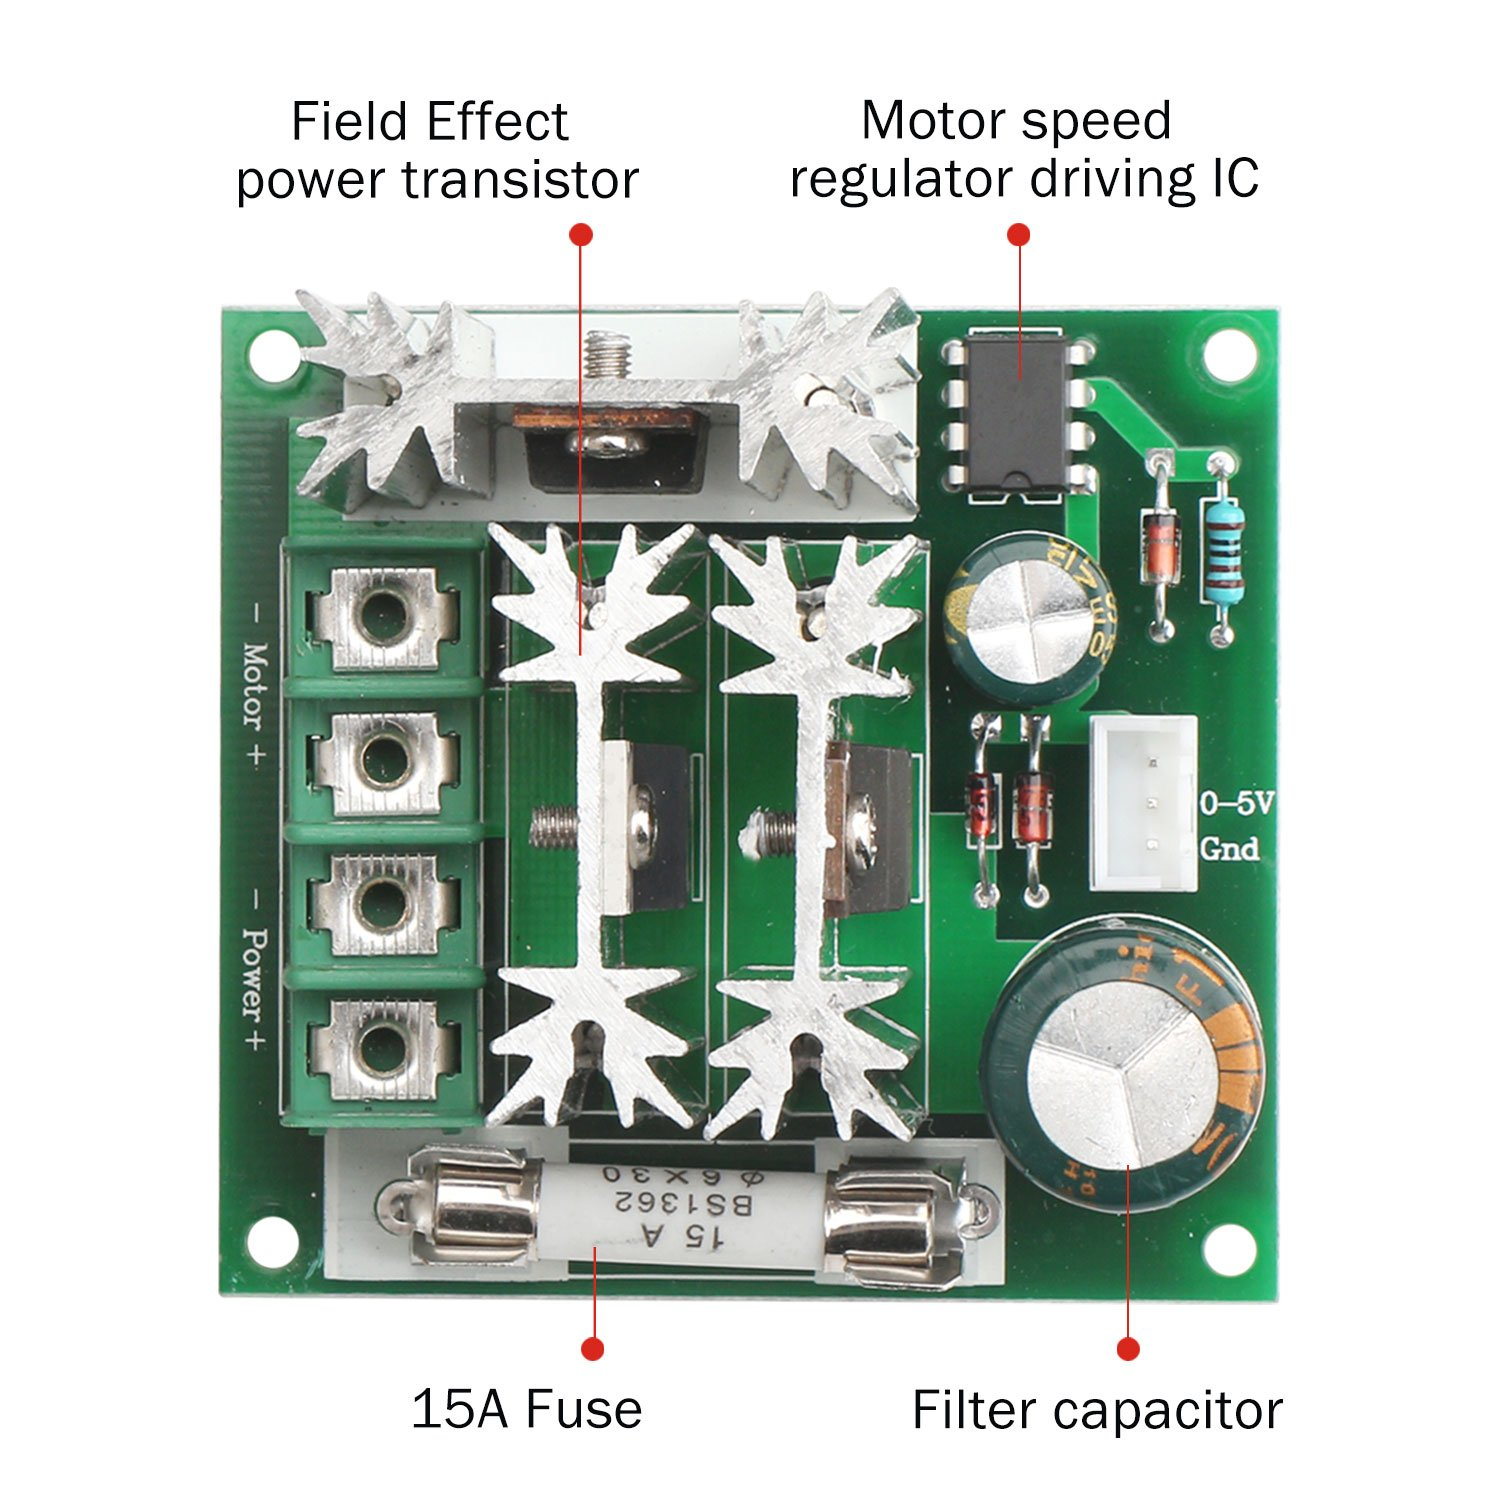 Drok 6 90v Dc Motor Speed Controller Pwm Module 1000w Amazonco Regulator With A Field Effect Transistor Power Supply Circuits Electronics